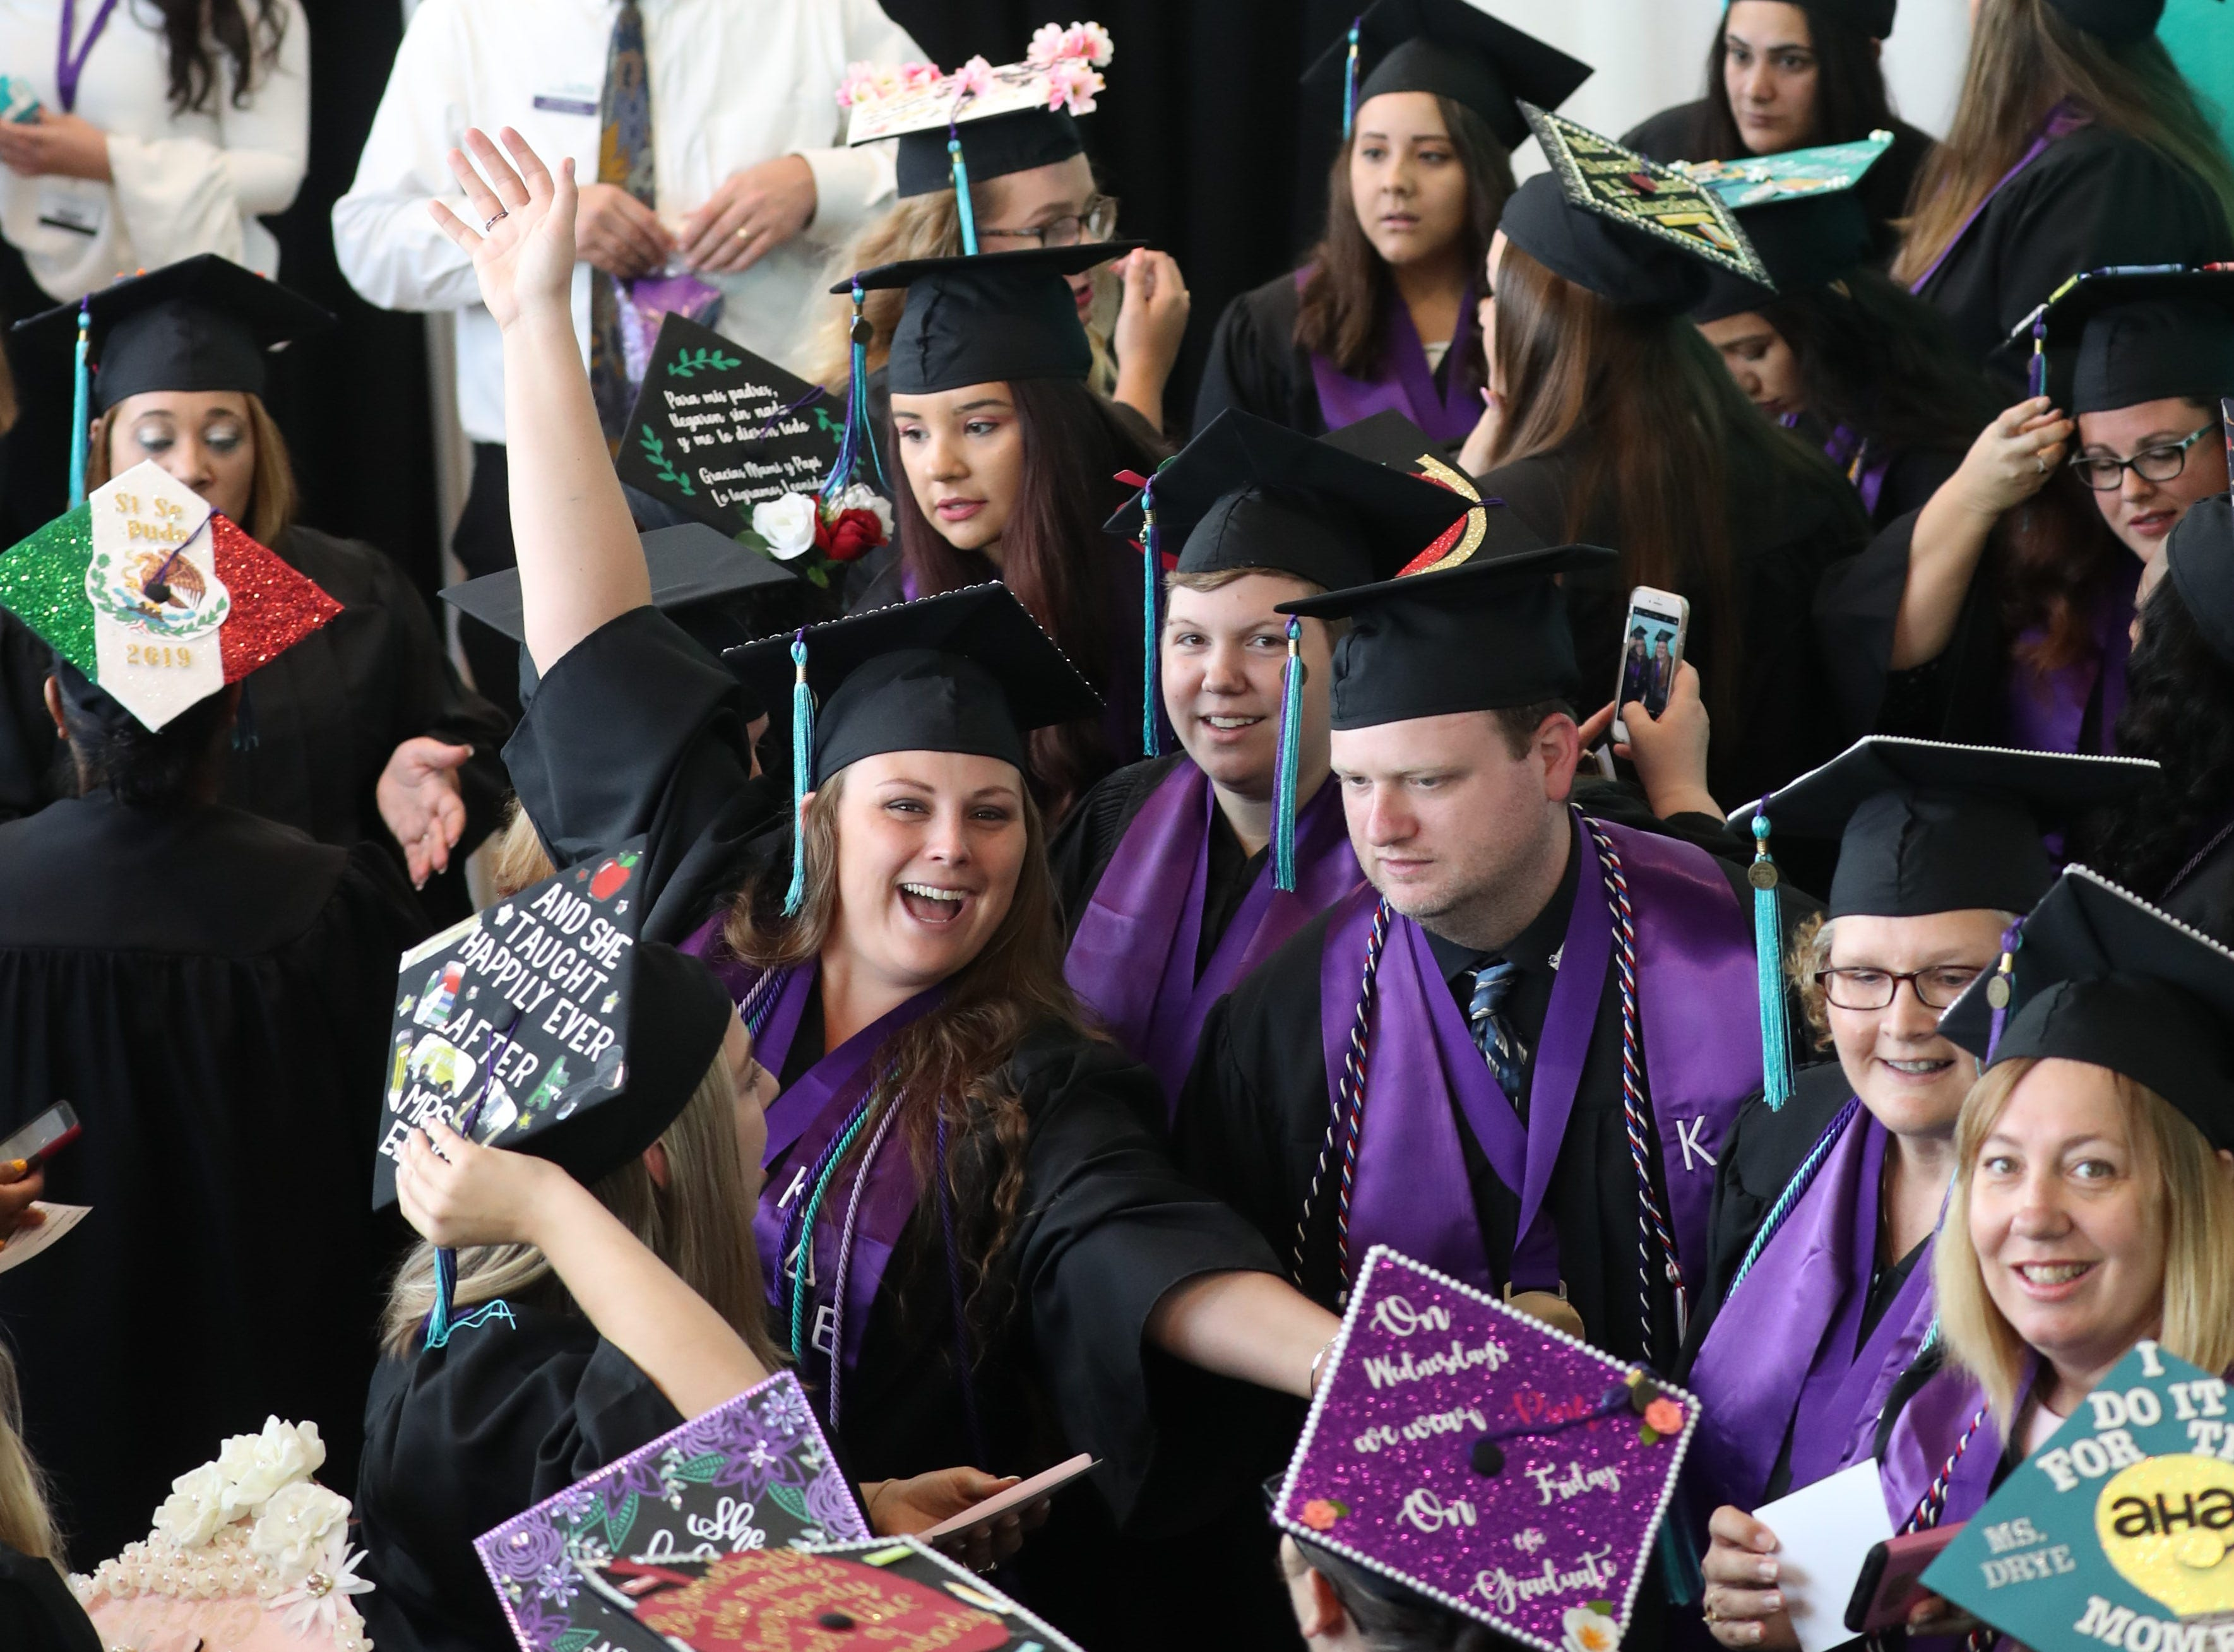 Students graduate from Florida Southwestern State College on Friday morning, May 3, 2019, in Fort Myers.